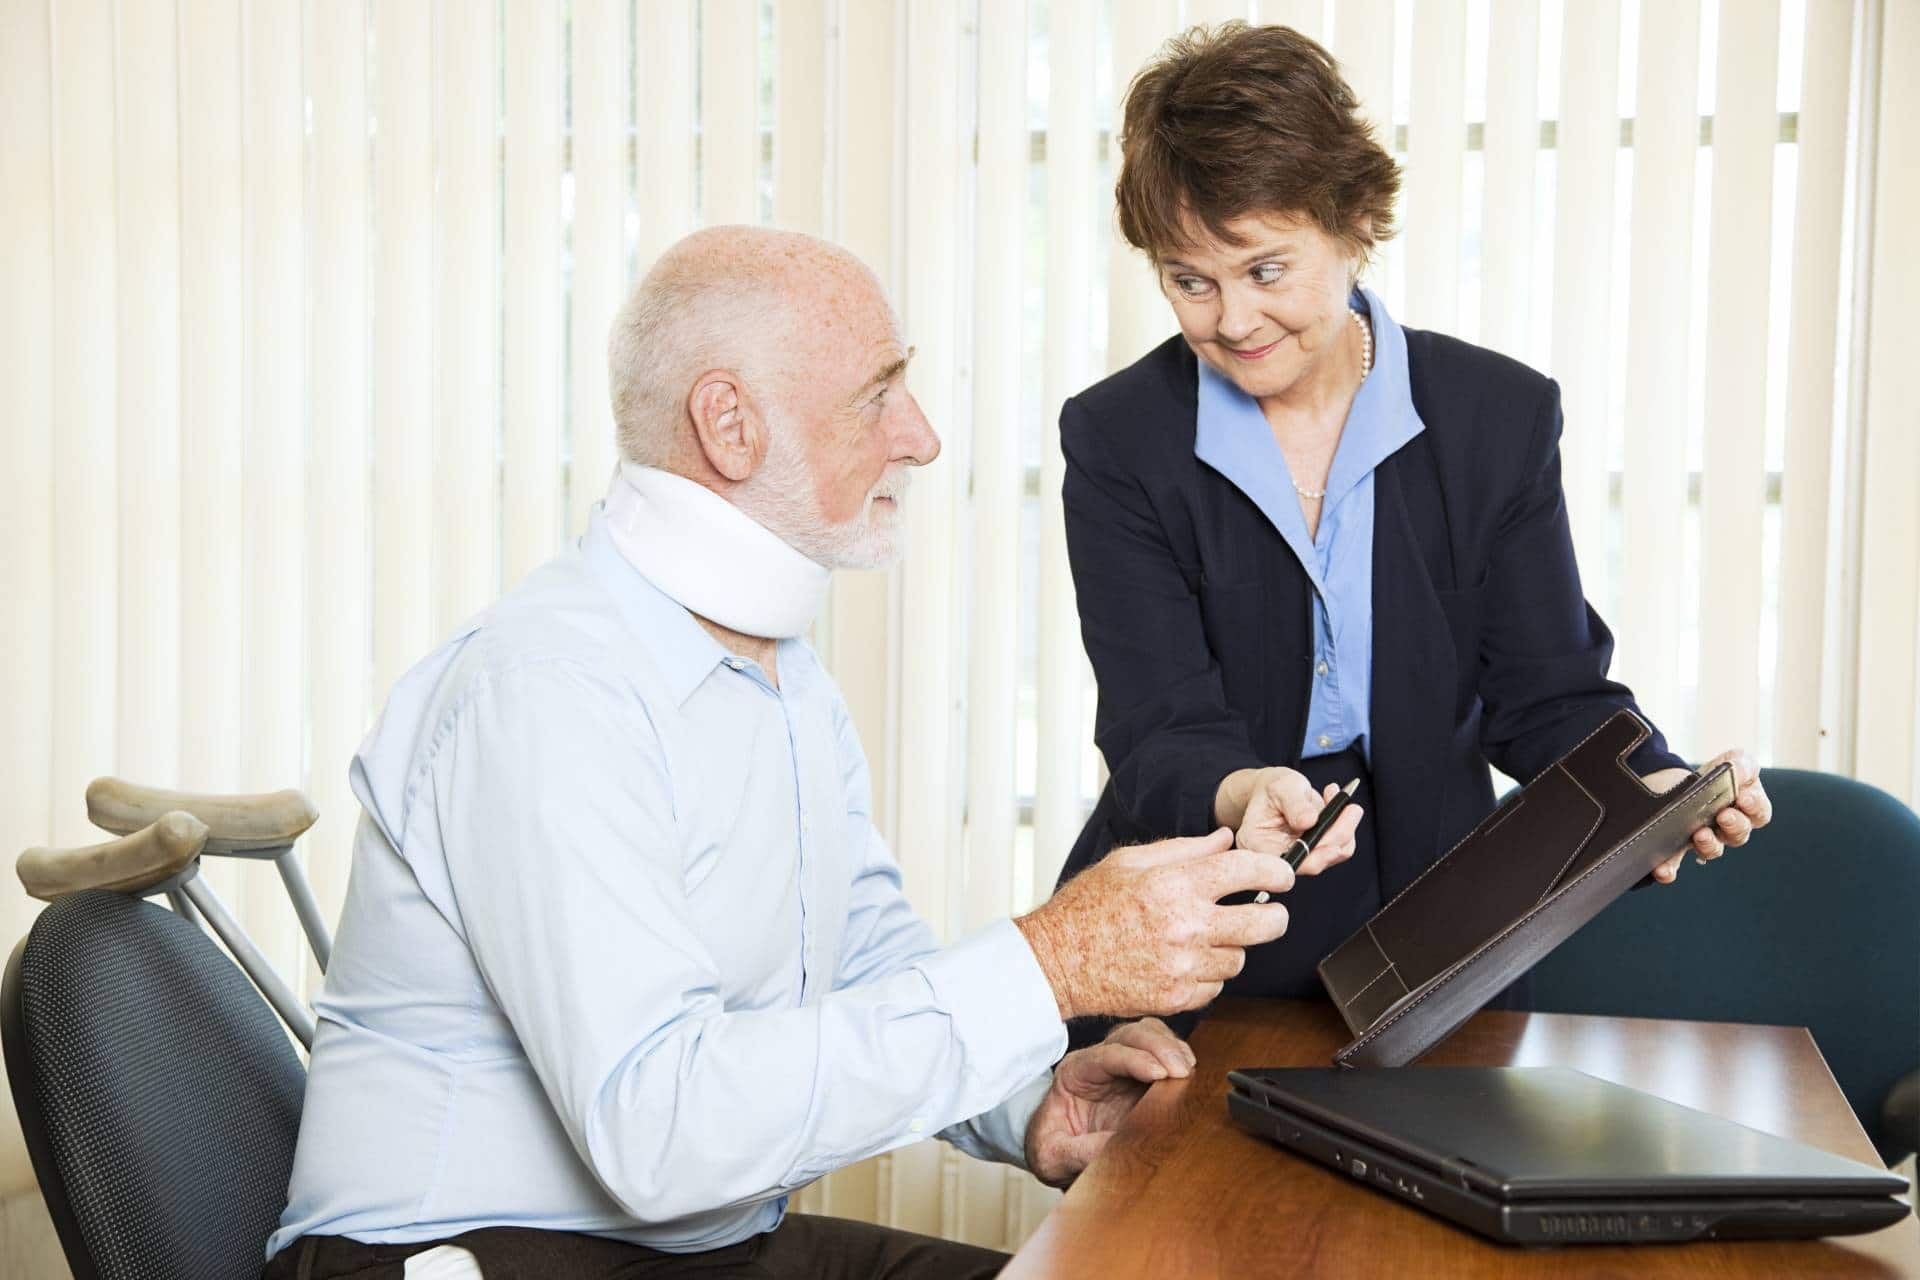 Schedule a free consultation with a personal injury lawyer at the Angell Firm in Forest Park, GA